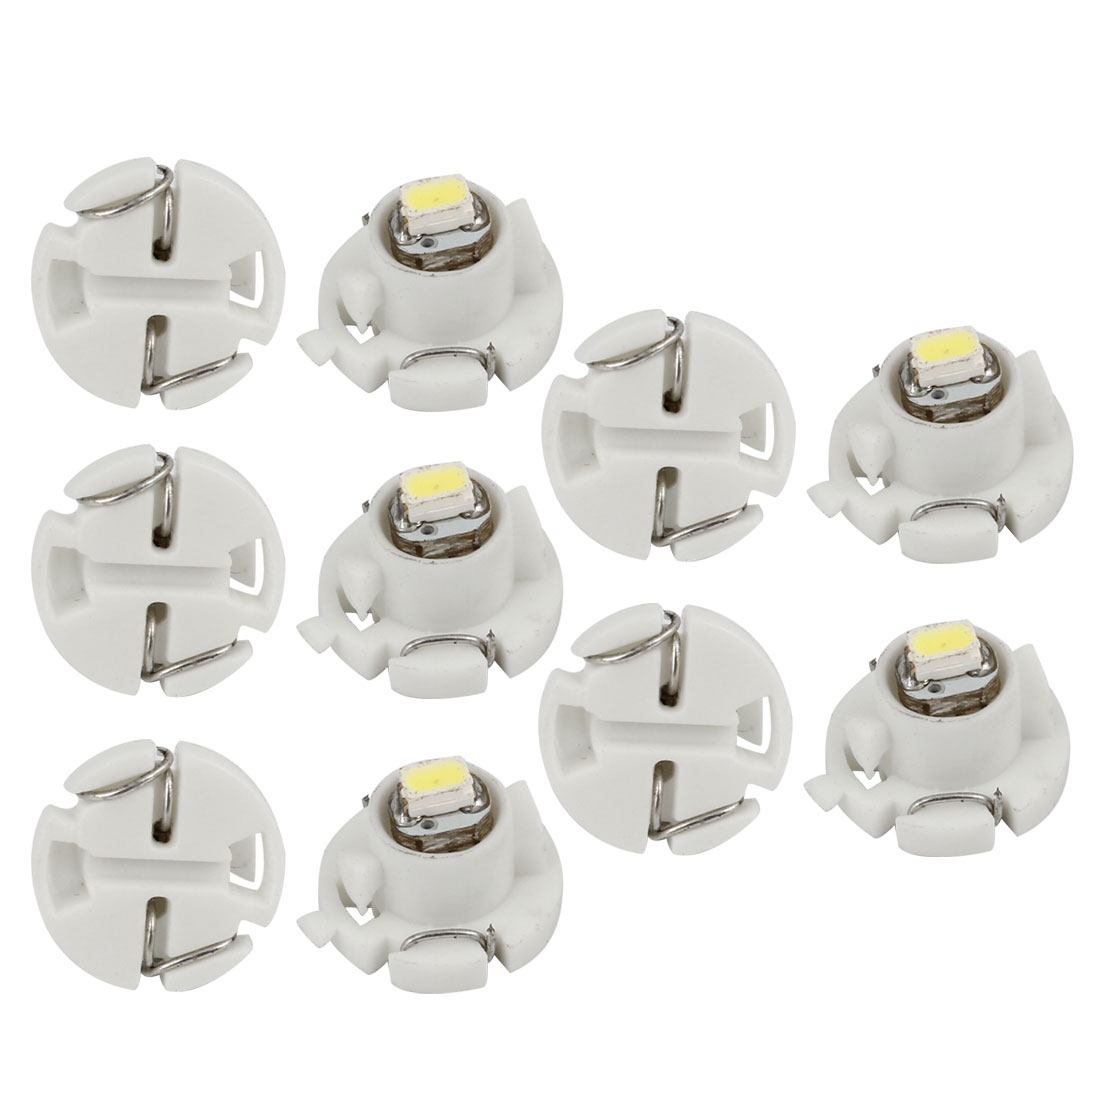 10 Pcs T4.2 White 3020 1 SMD LED Dashboard Meter Panle Light Bulb for Car Internal